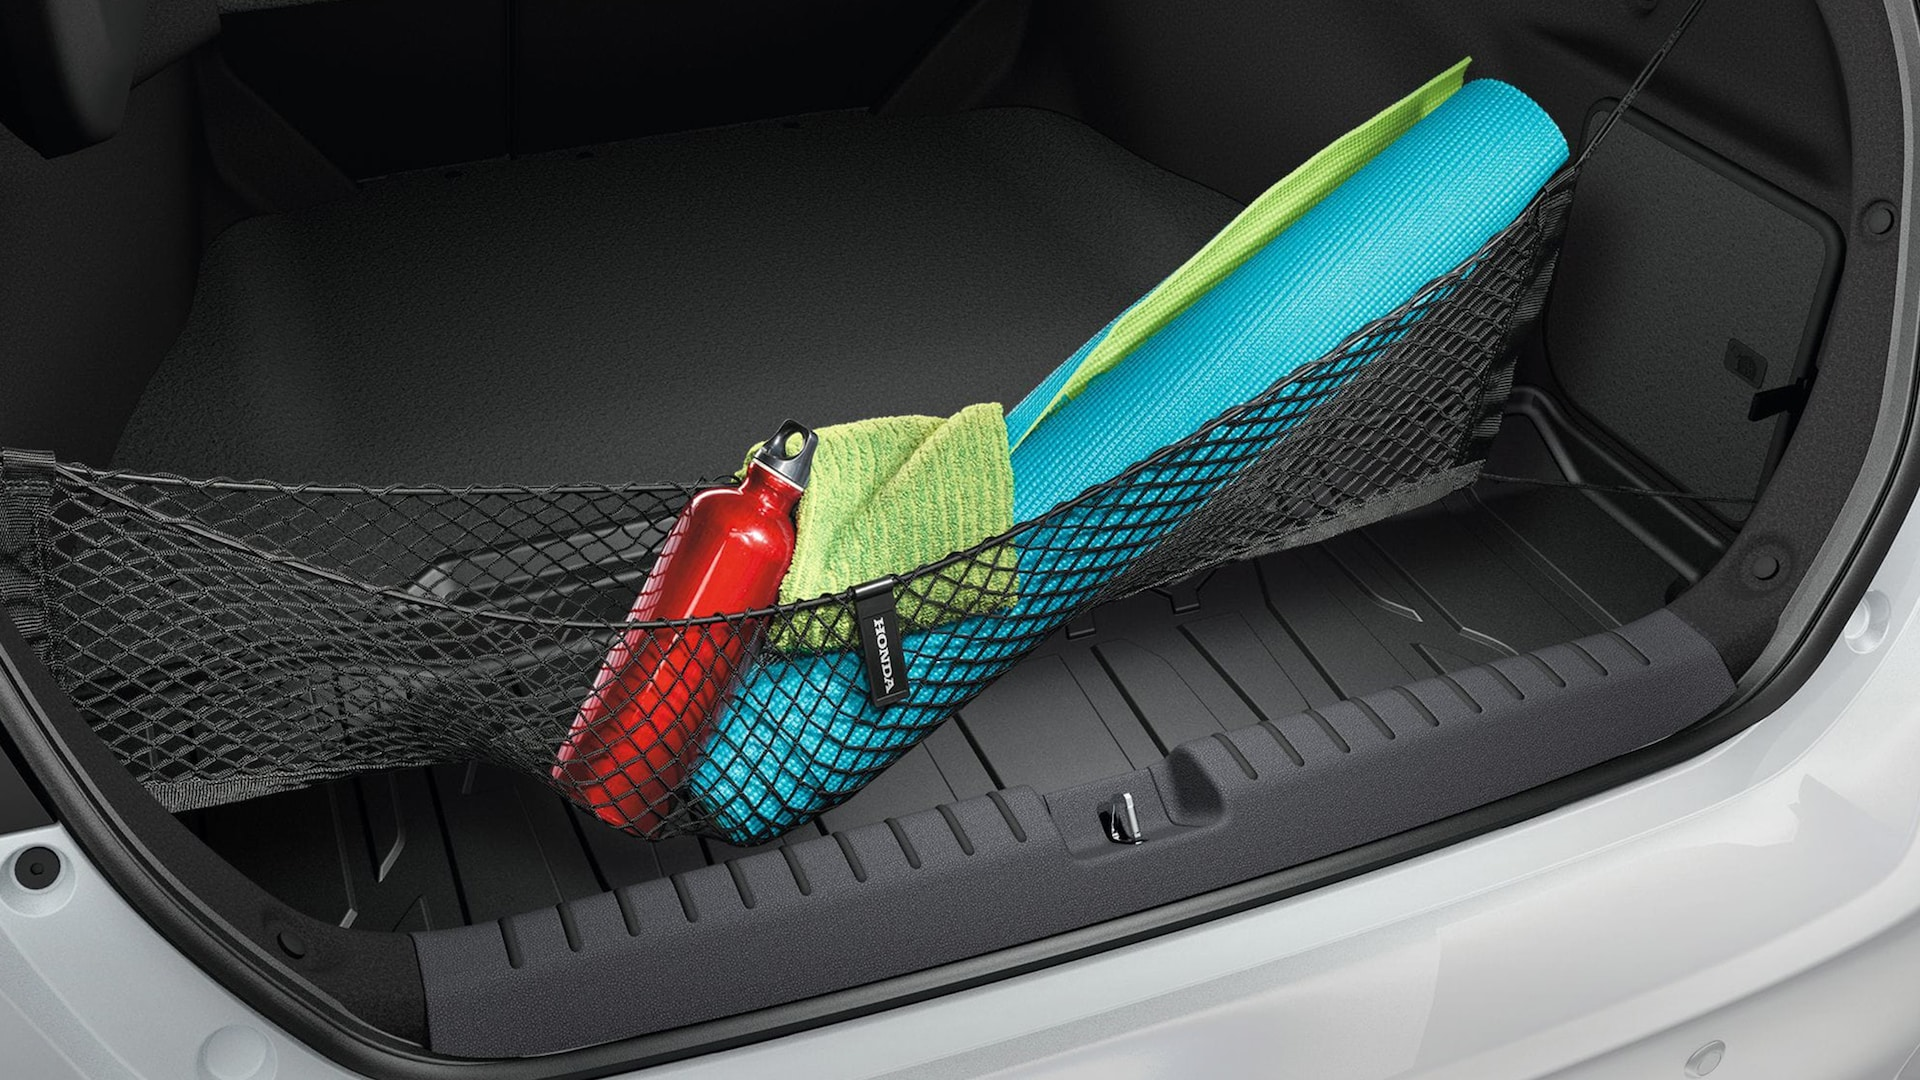 Honda Genuine Accessories cargo net.